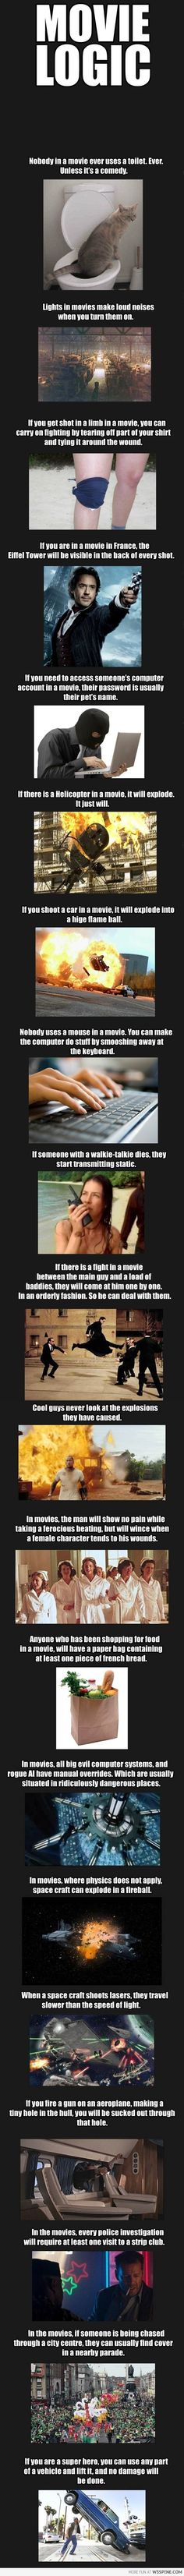 Movie Logic. hahahah